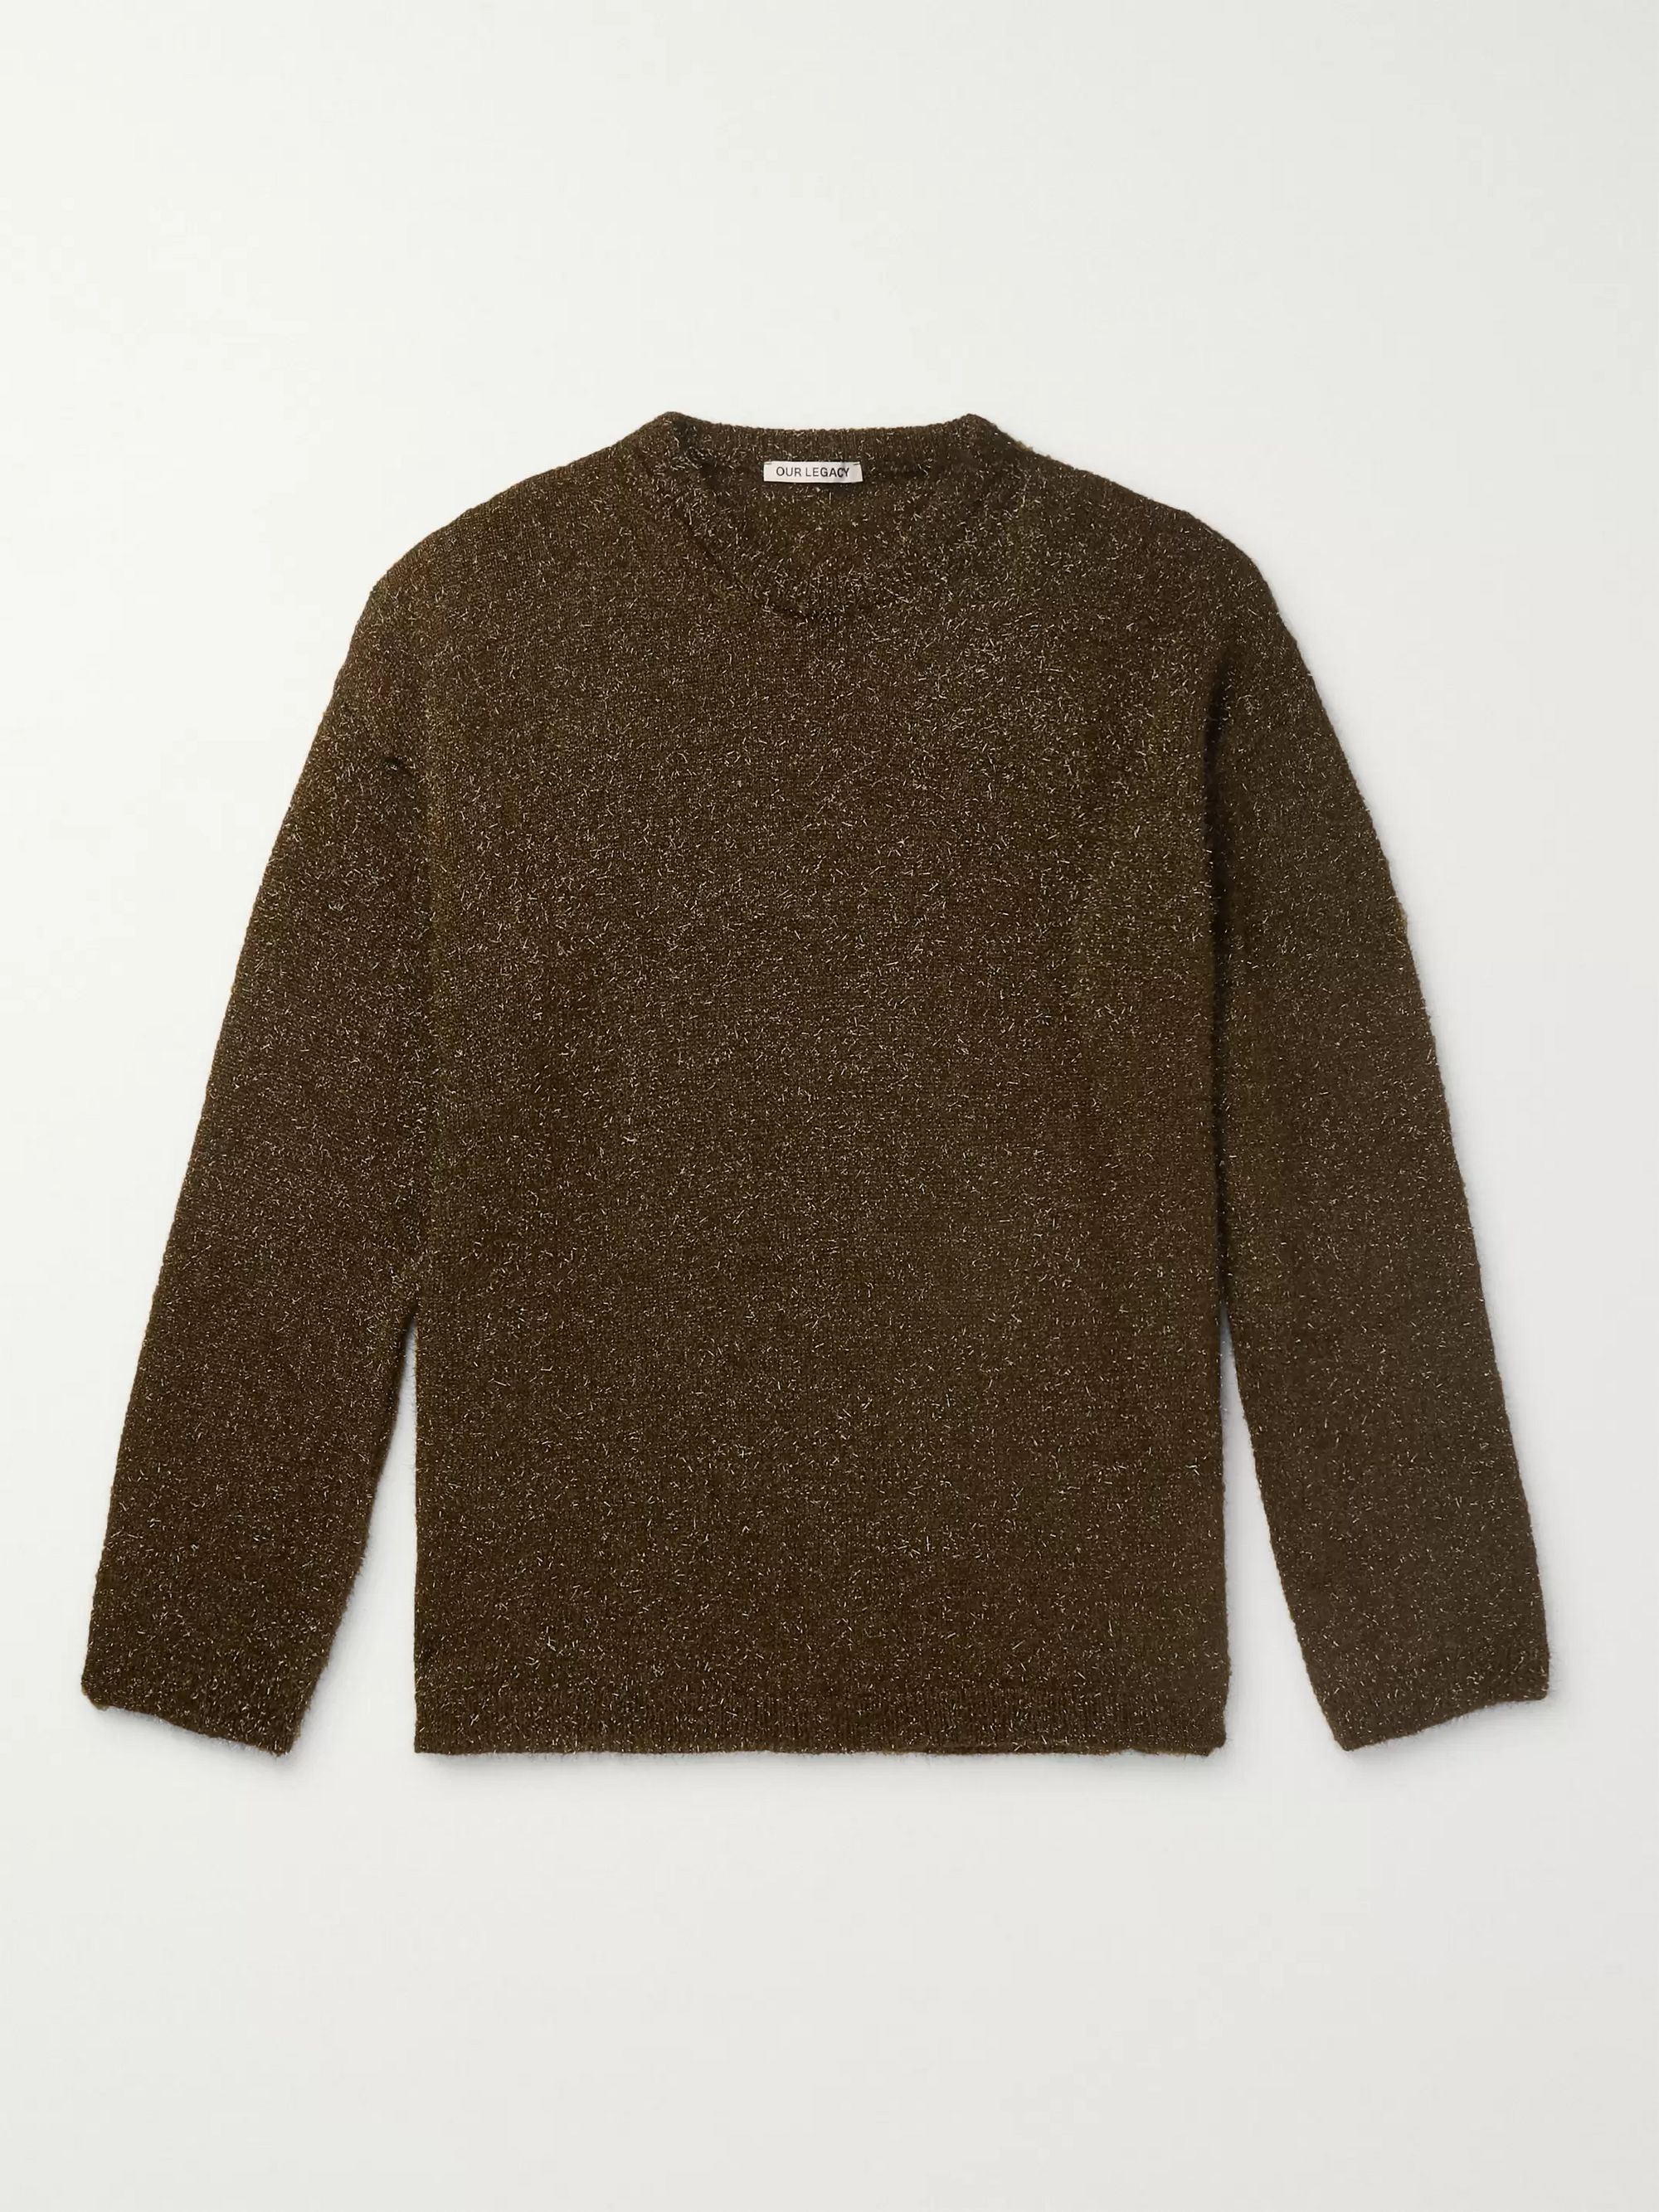 sonar-metallic-knitted-sweater by our-legacy